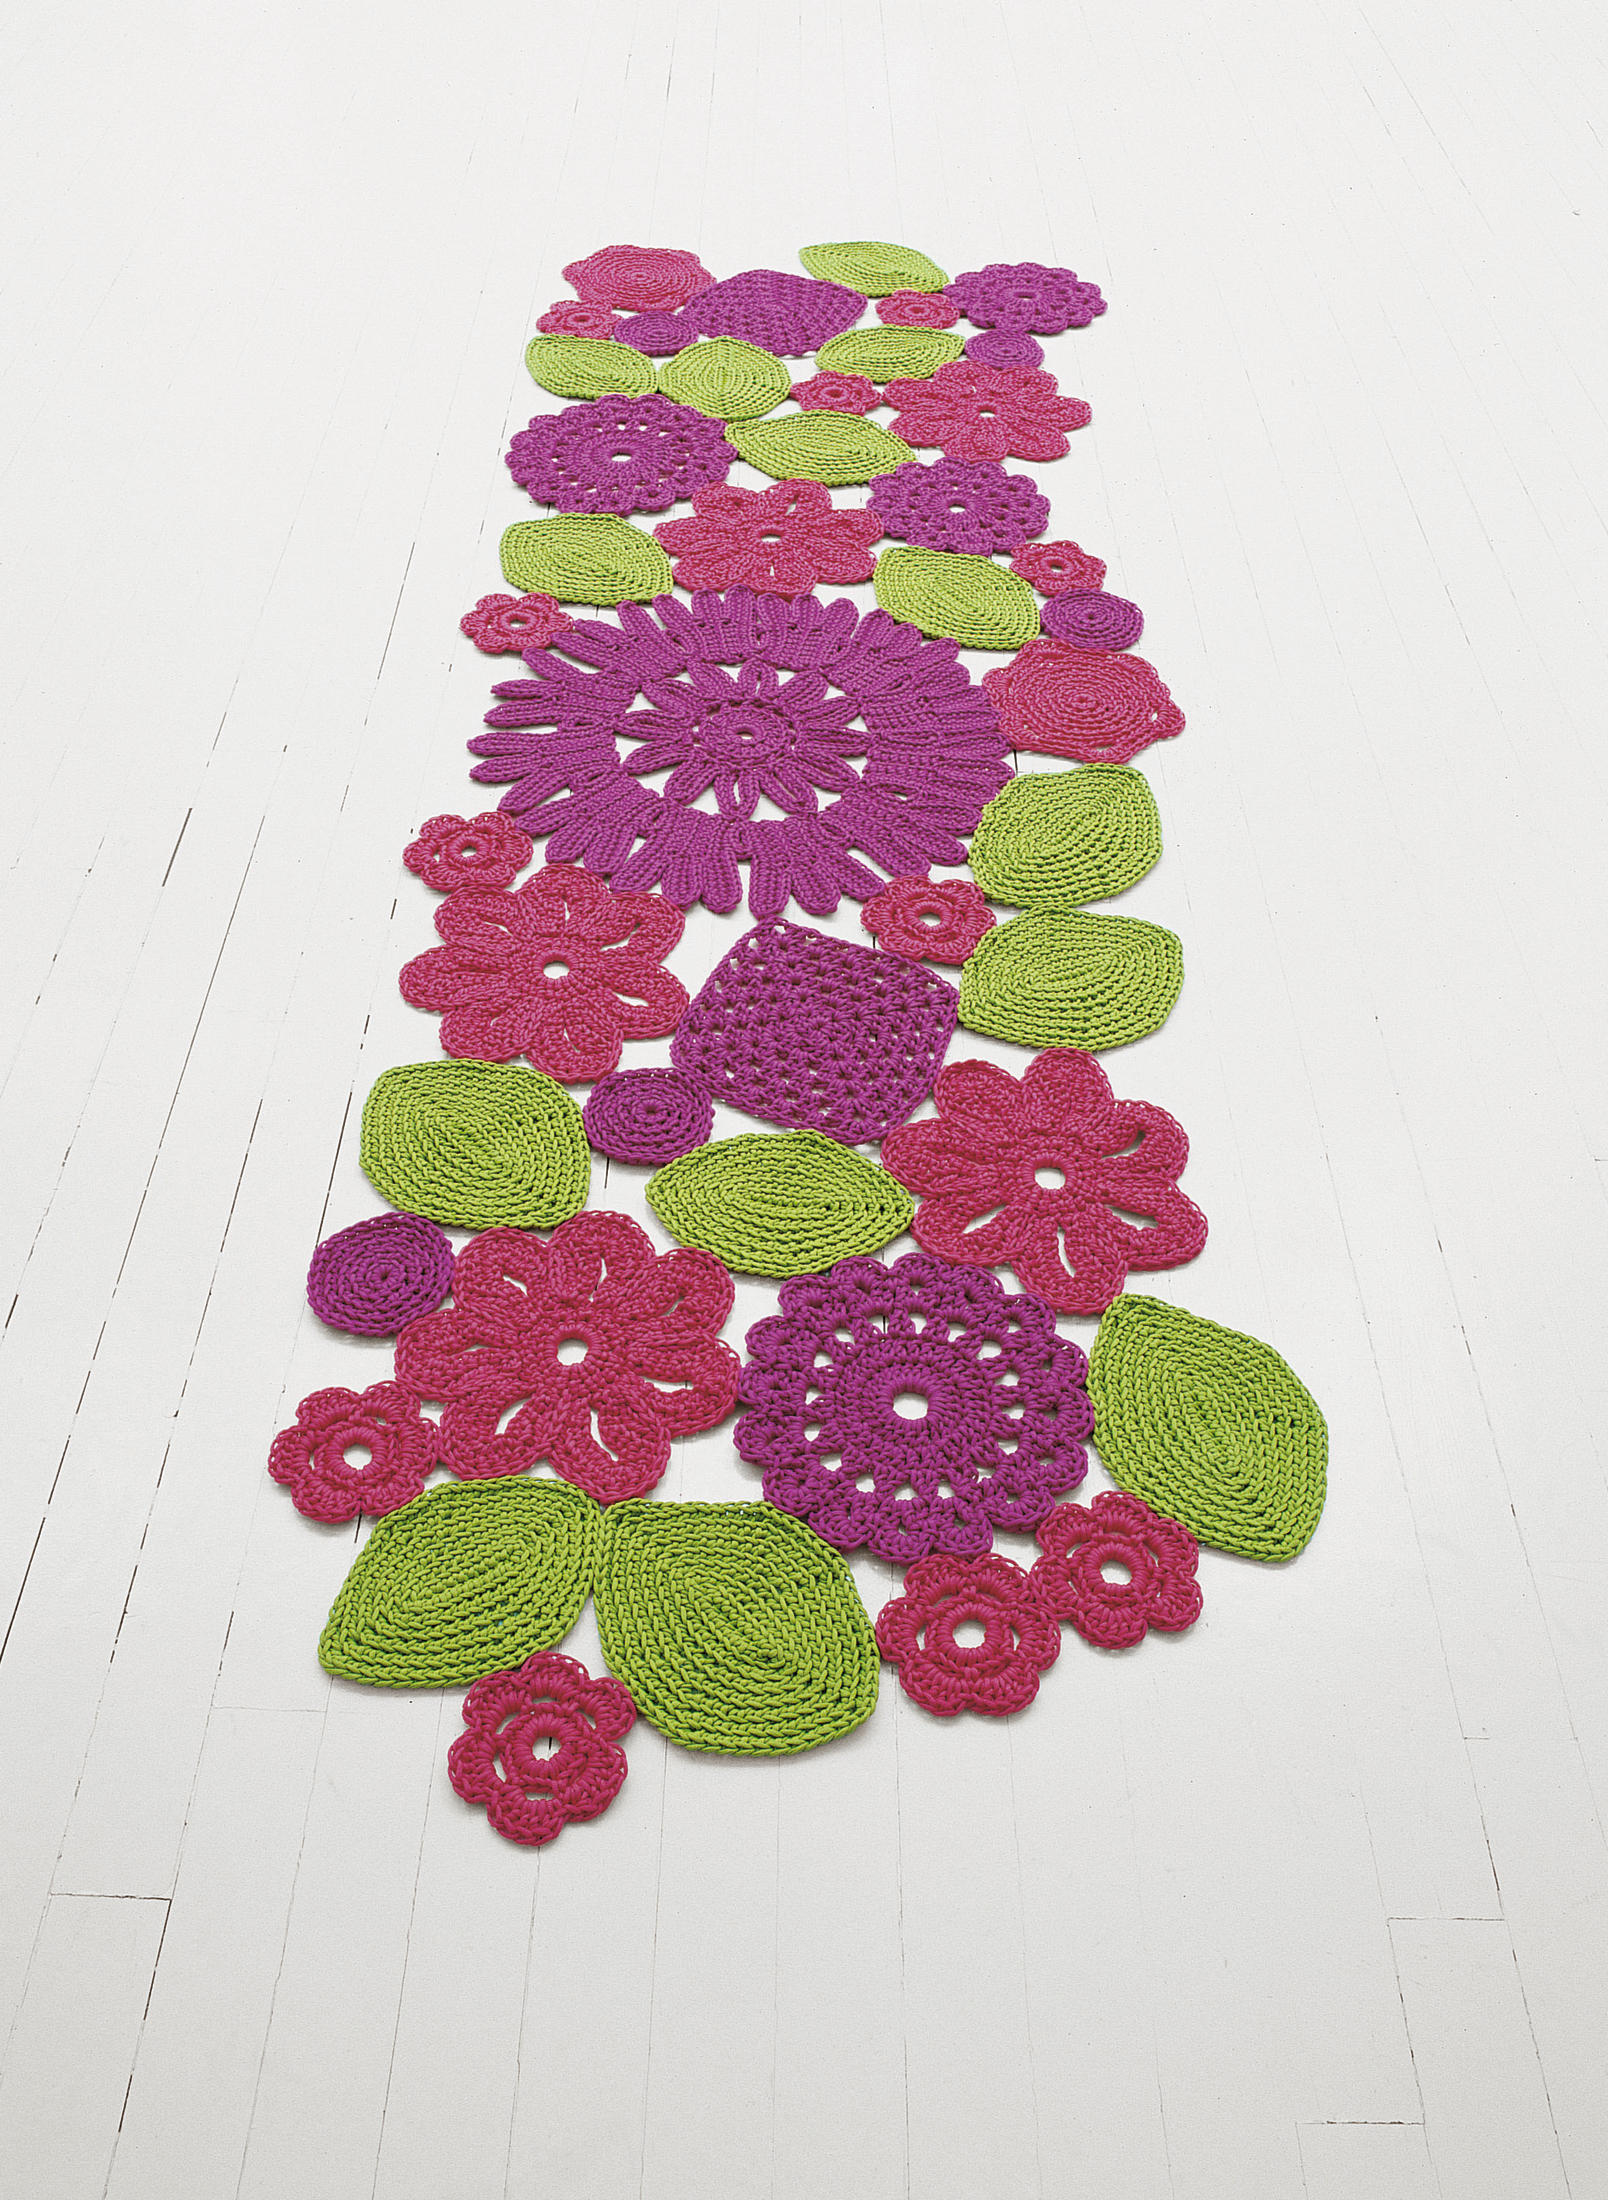 Crochet Rugs From Paola Lenti Architonic